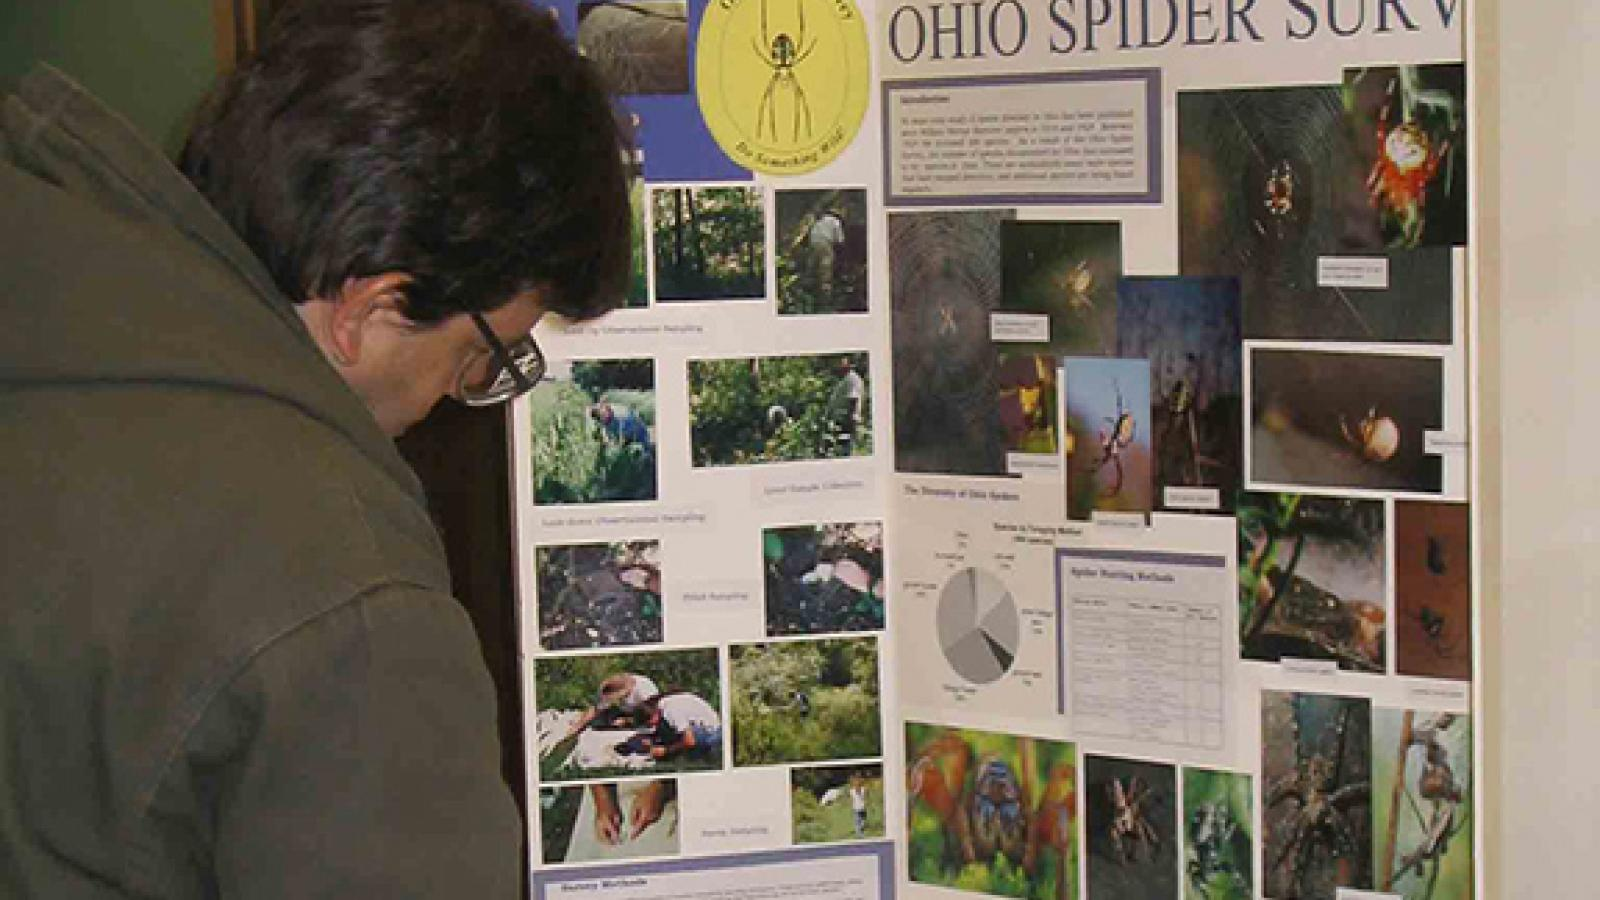 Spiders 2006 Open House